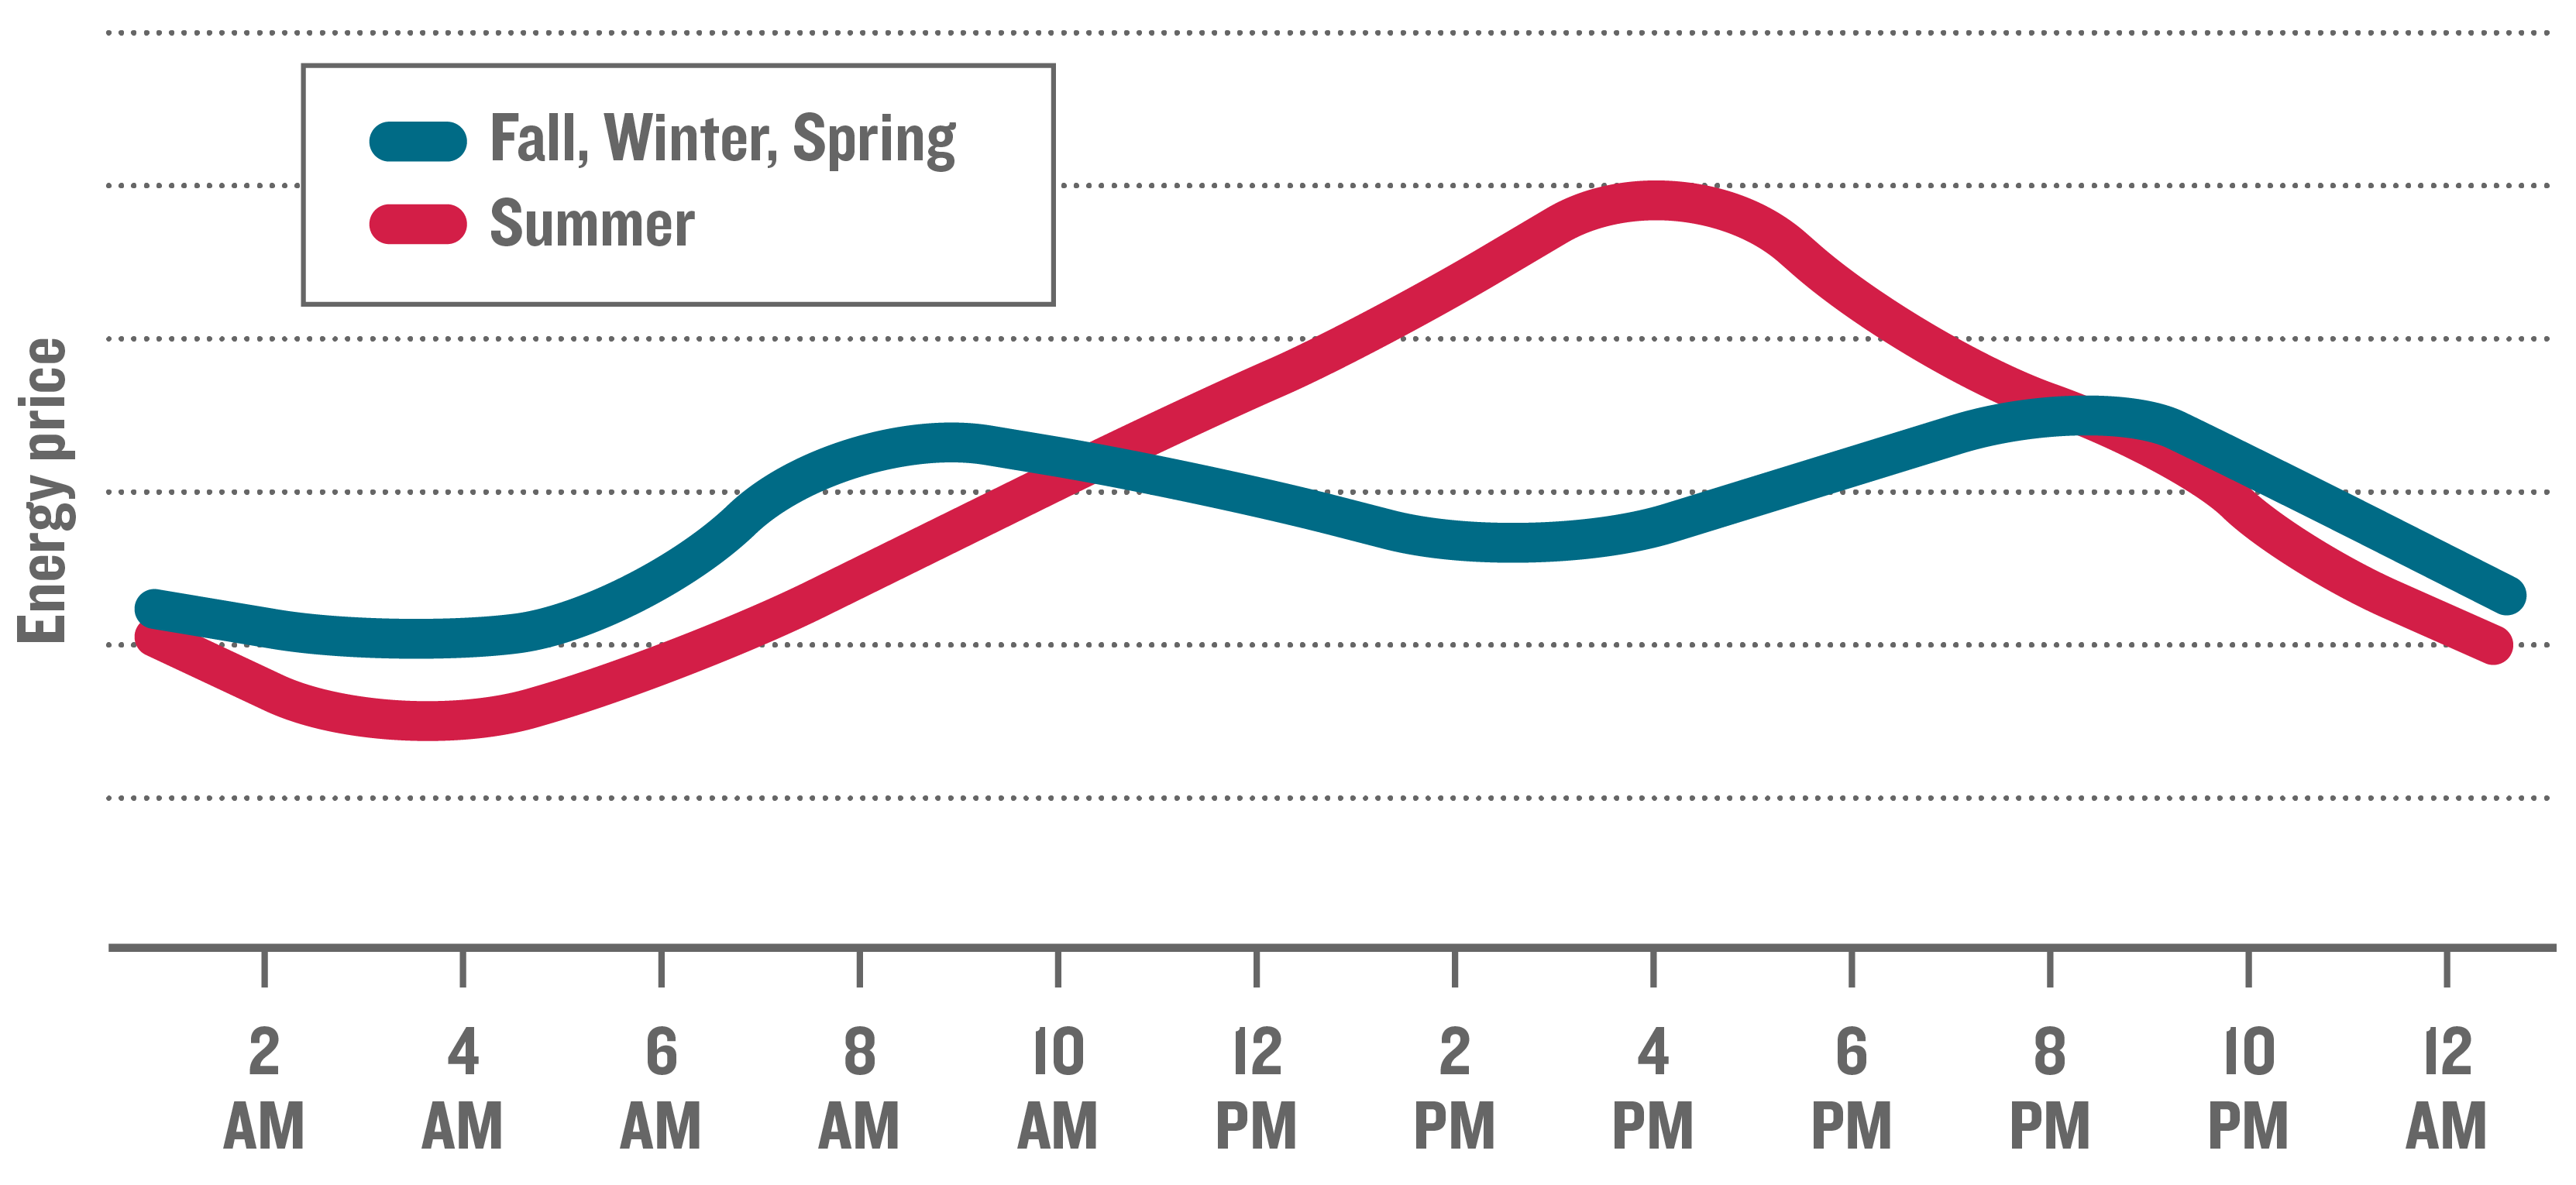 Image of line graph with daily kilowatt hour prices in summer, fall, winter, and spring. Summer graph shows highest daily prices in the late afternoon. Fall, winter, and spring graph shows highest daily prices in the morning and early evening.